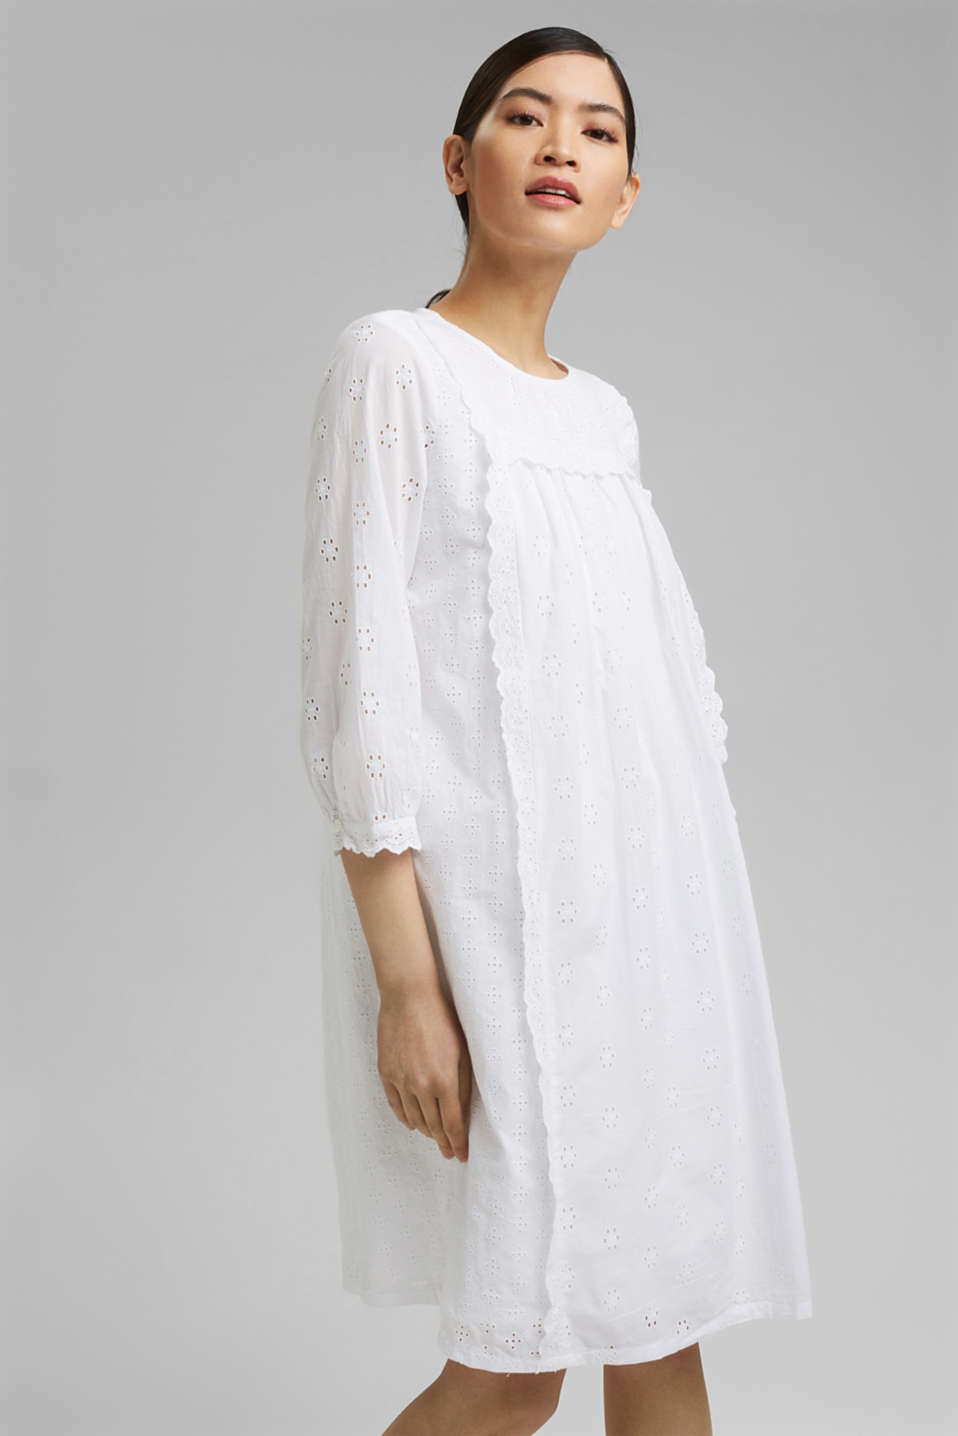 Esprit - Broderie anglaise dress, 100% organic cotton